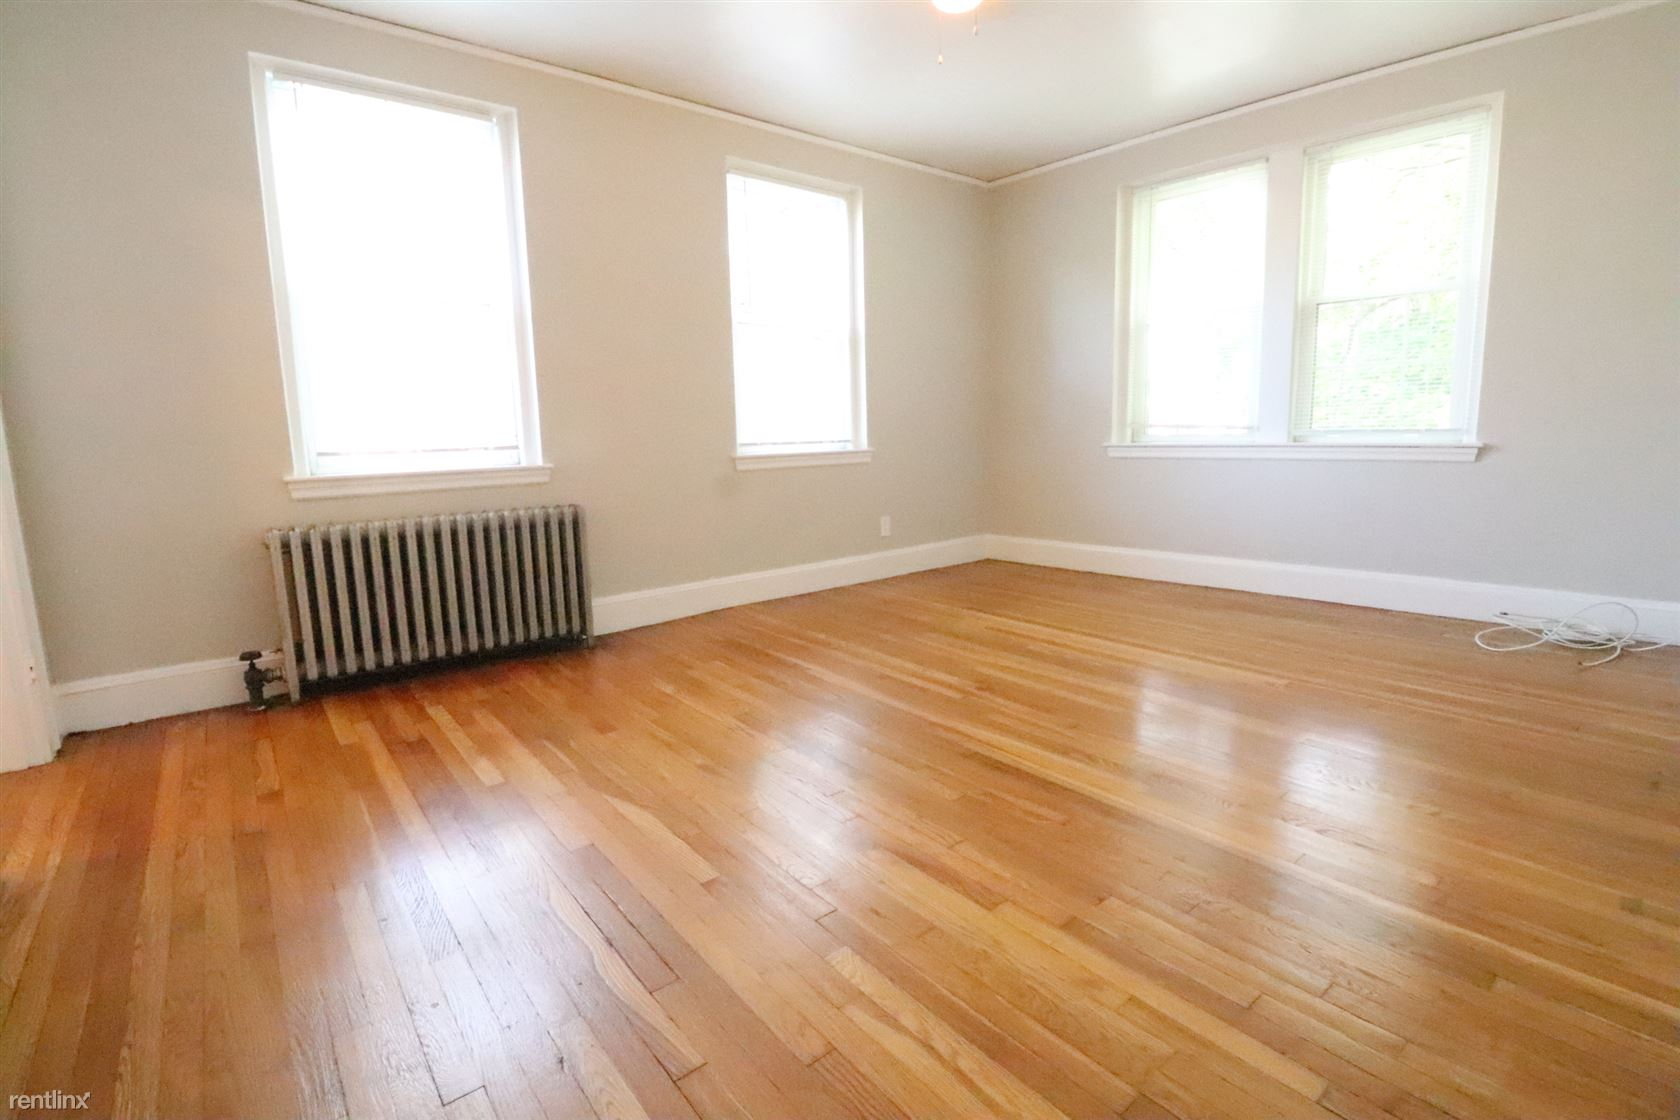 119 College Ave Apt 32, Somerville, MA - $2,195